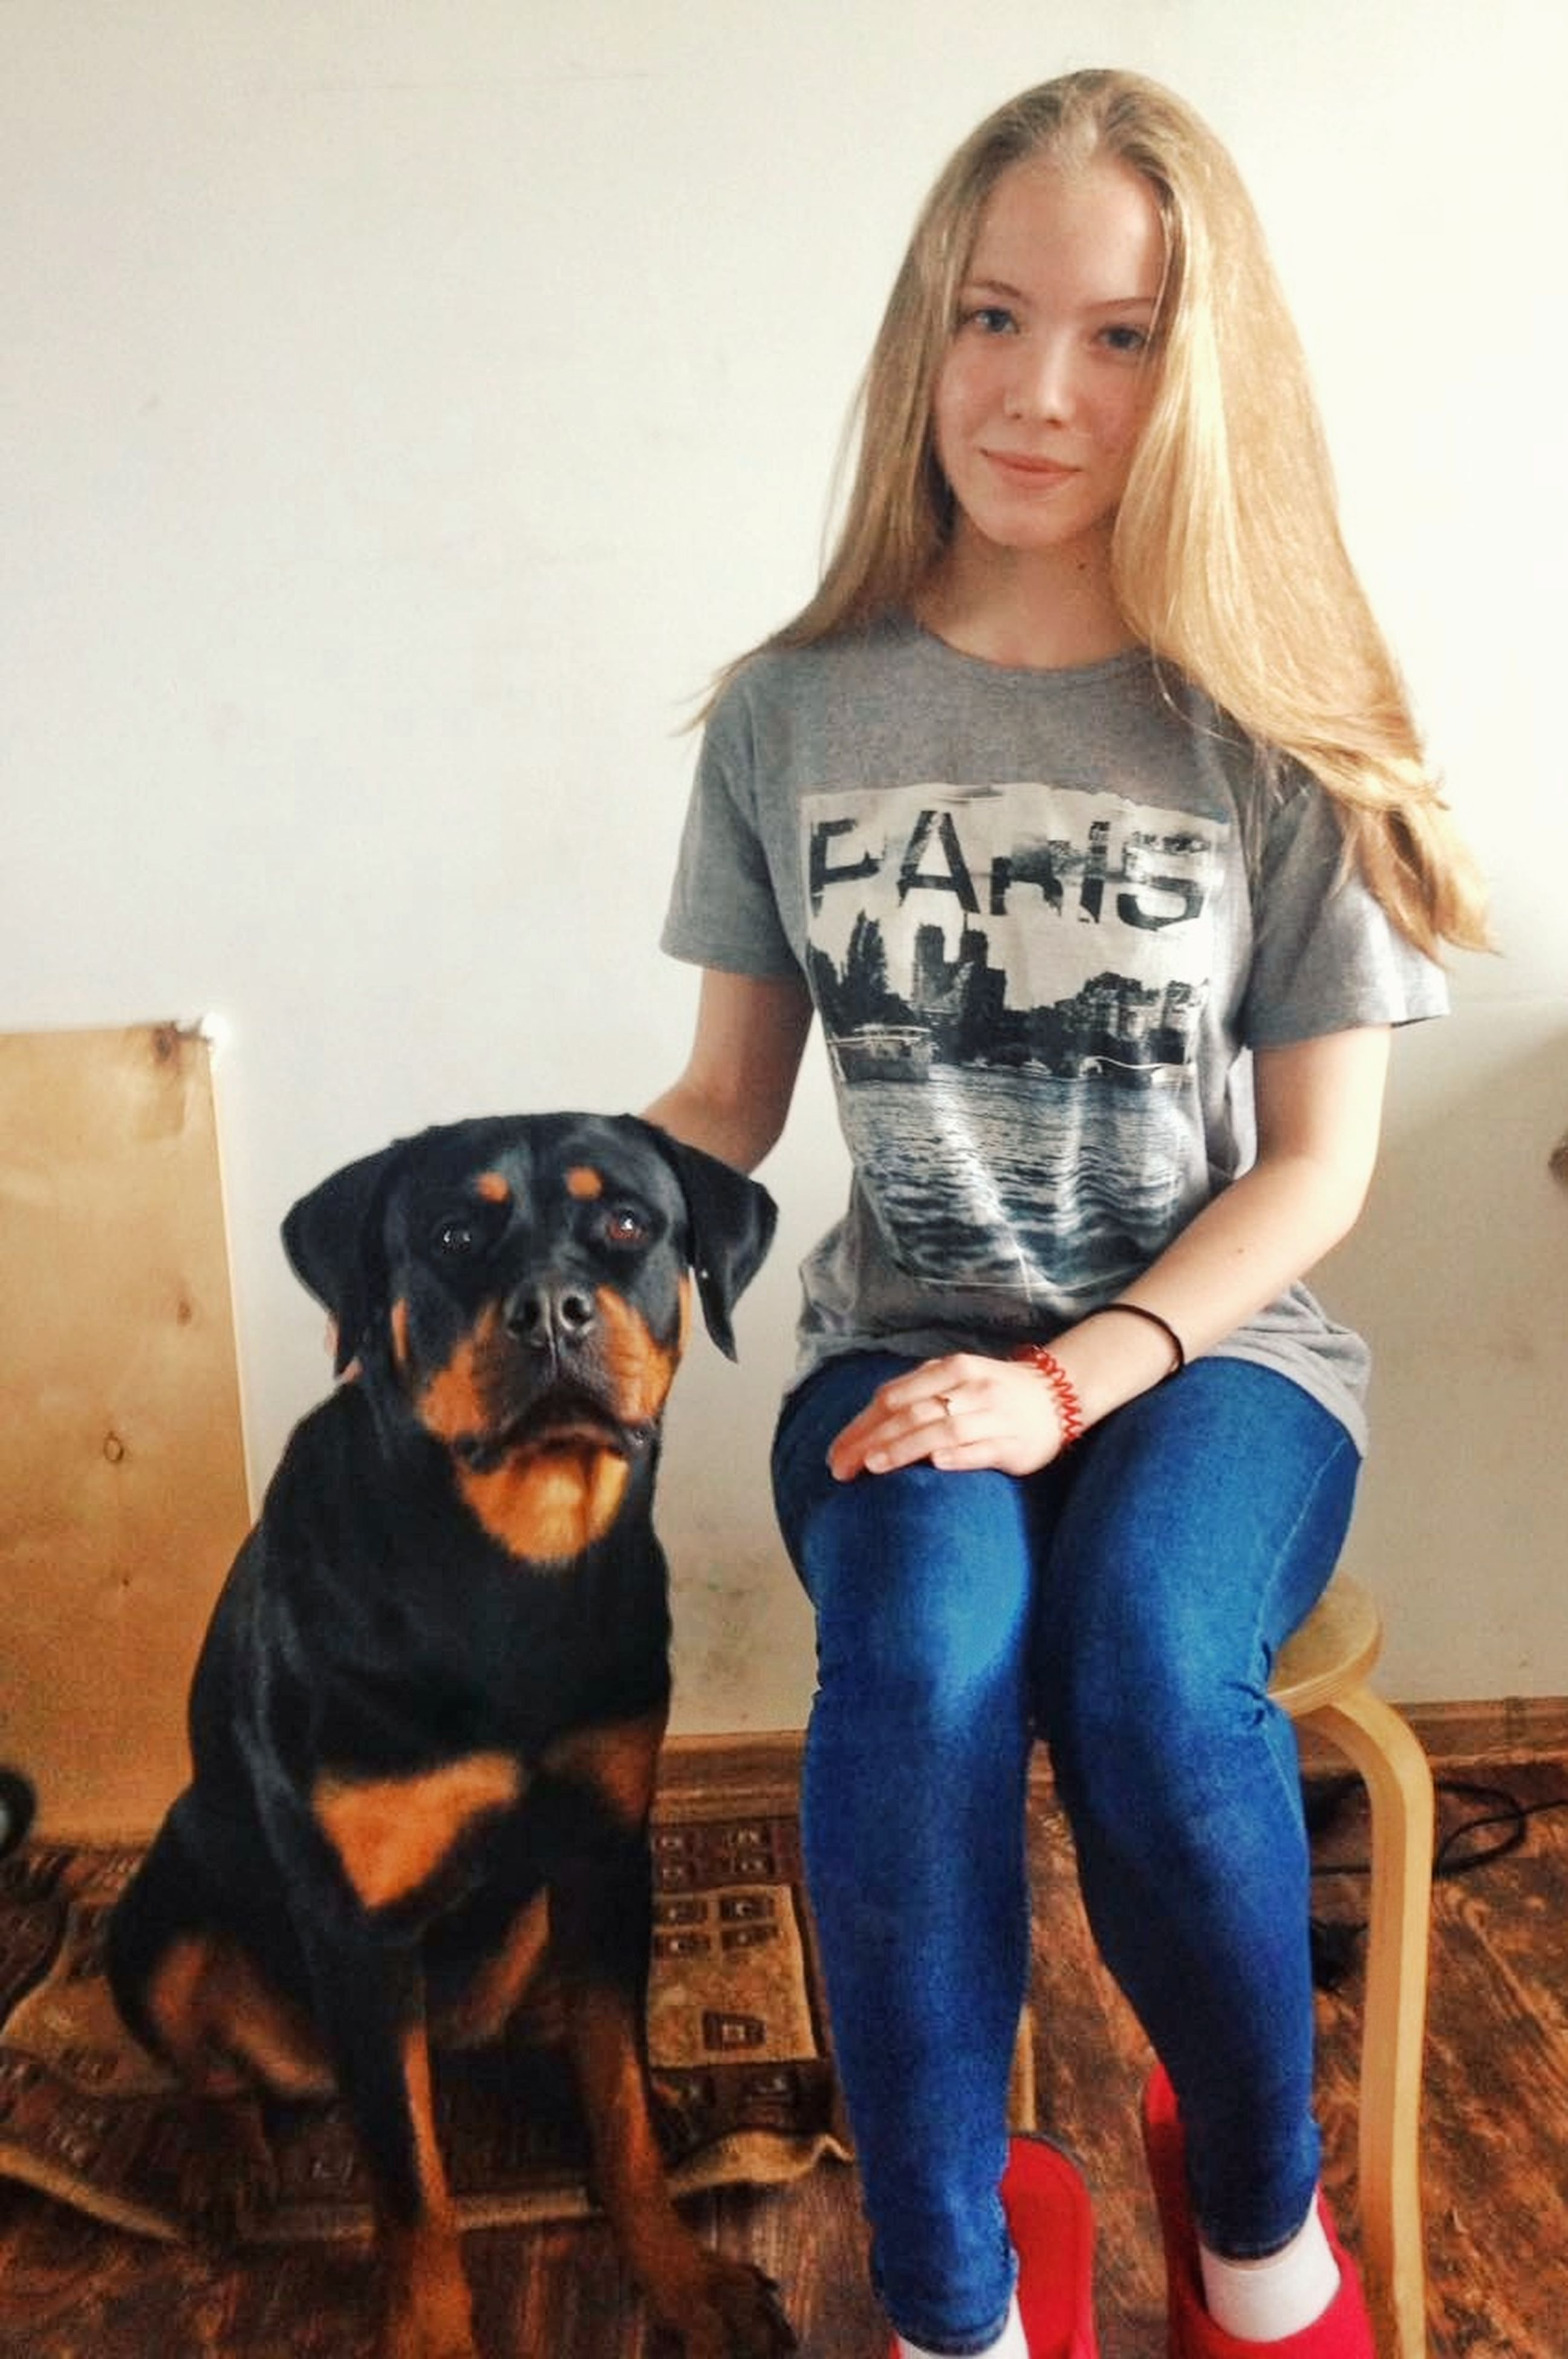 dog, casual clothing, pets, one person, sitting, real people, one animal, animal themes, front view, domestic animals, looking at camera, full length, standing, portrait, young adult, young women, day, indoors, mammal